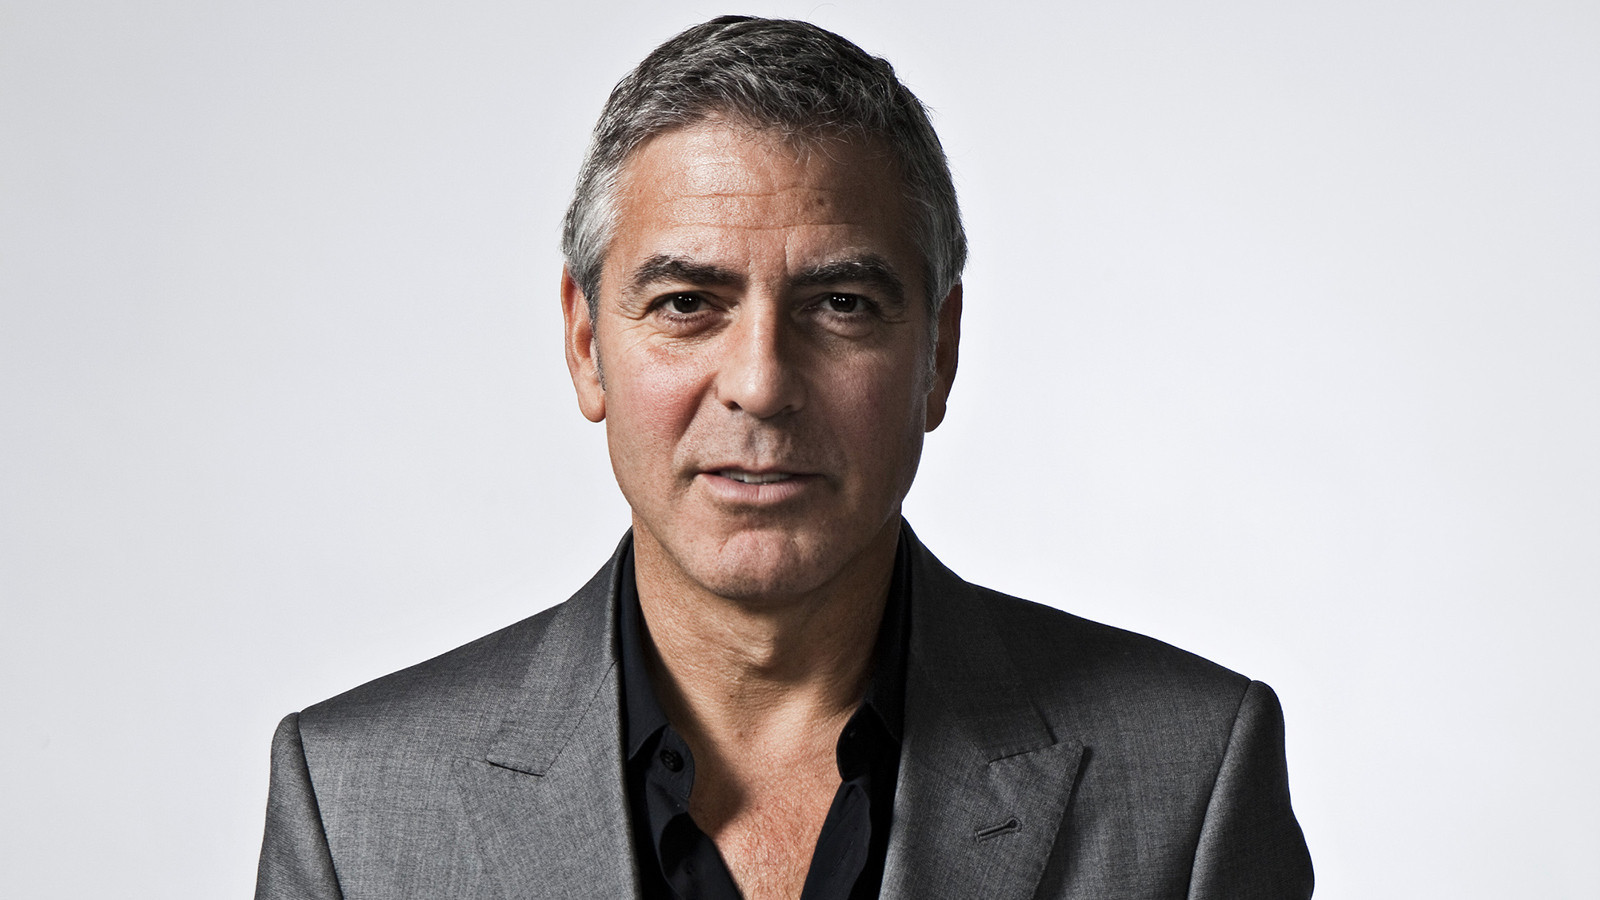 george clooney - photo #11